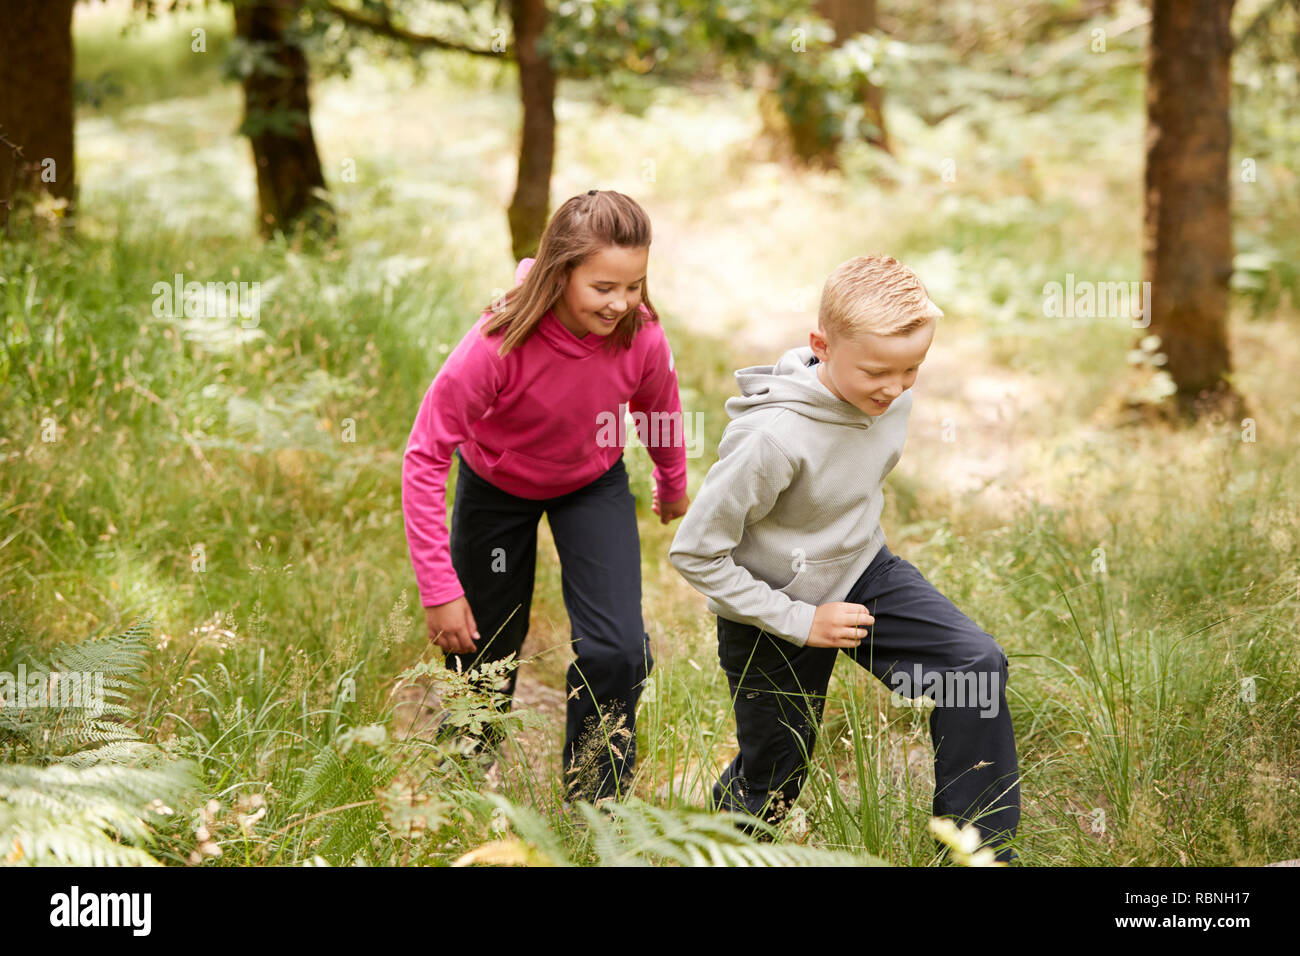 Two children walking together in a forest amongst greenery, three quarter length, side view - Stock Image